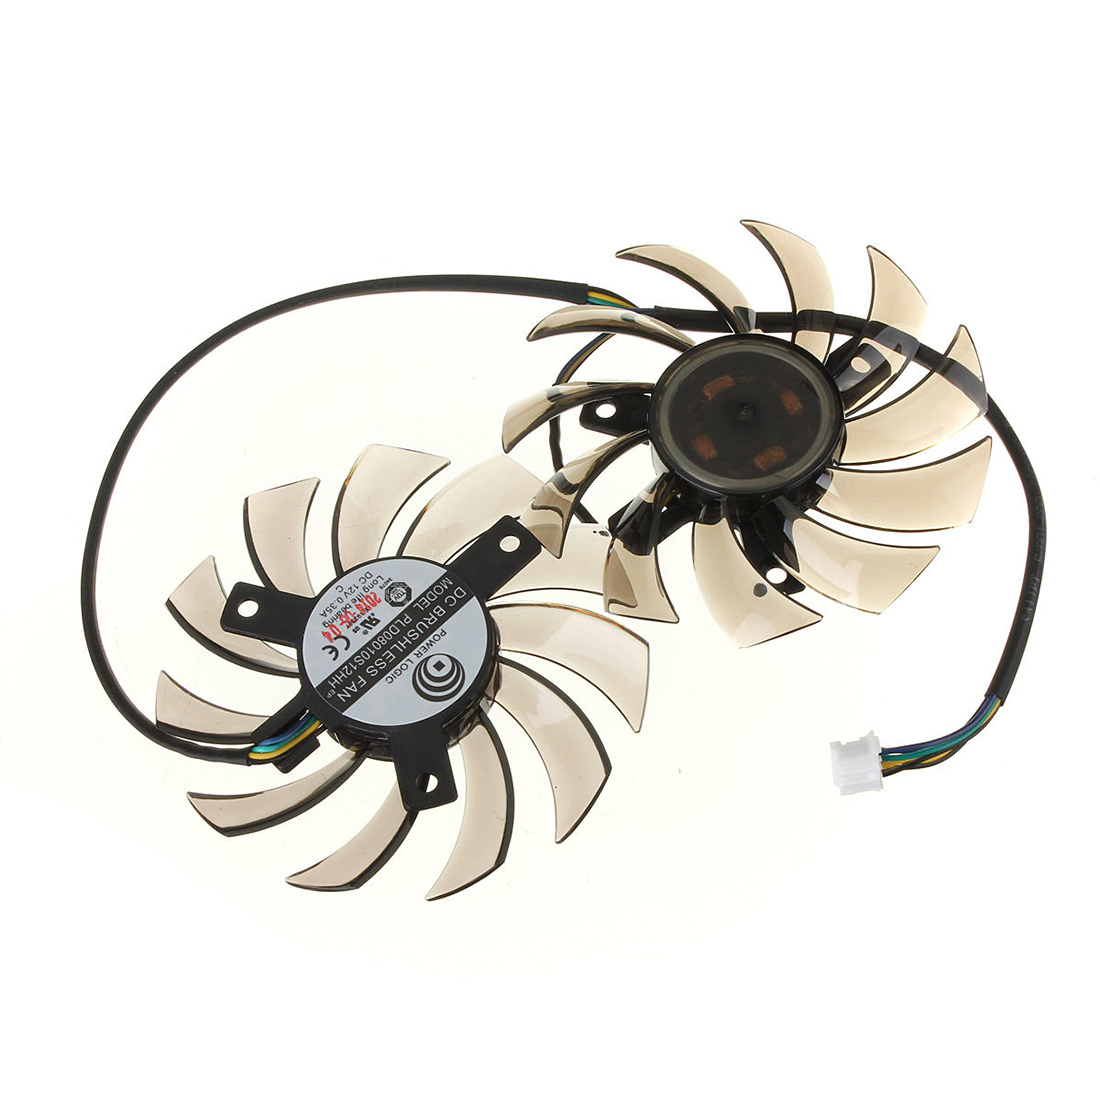 PPYY NEW -75MM <font><b>Graphics</b></font> <font><b>card</b></font> Dual fans for MST <font><b>GTX</b></font> <font><b>460</b></font> 580 R6870 R6950 image